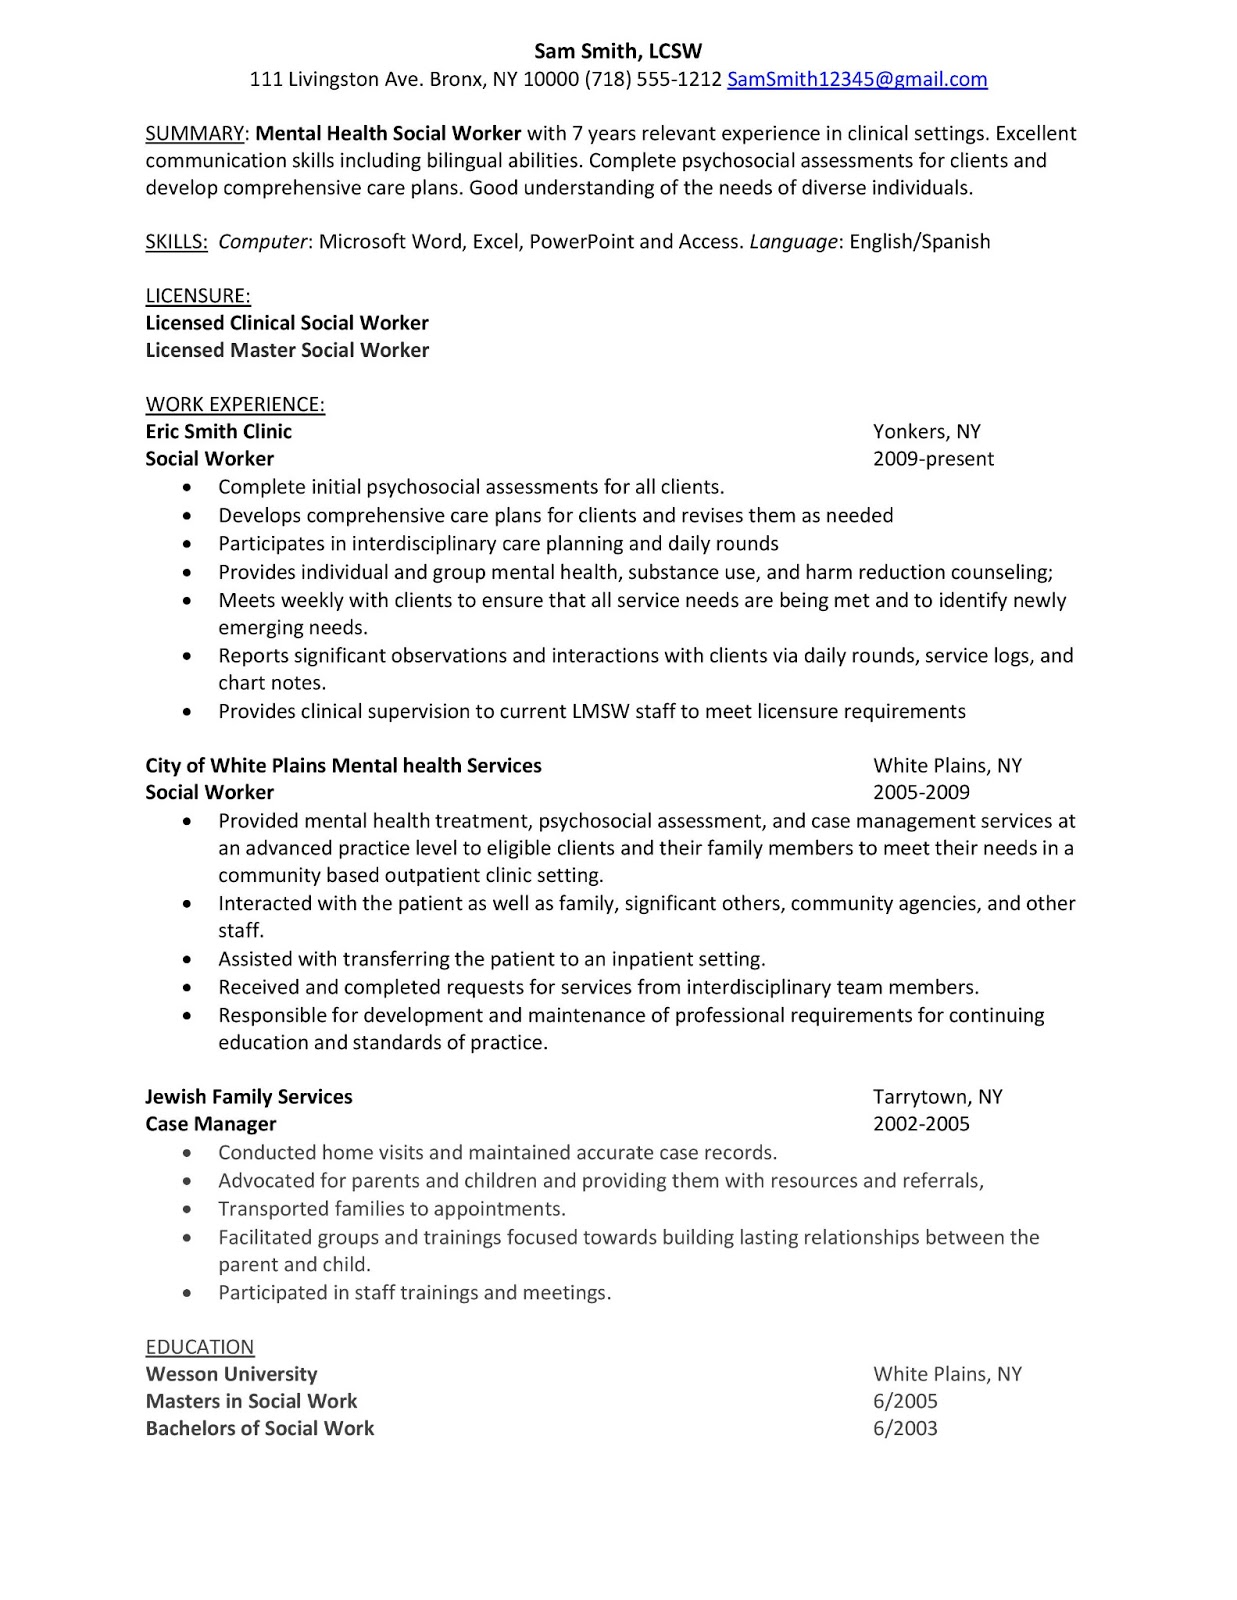 case manager resumes  siplagcom also sample resume mental health social worker  winning answers to